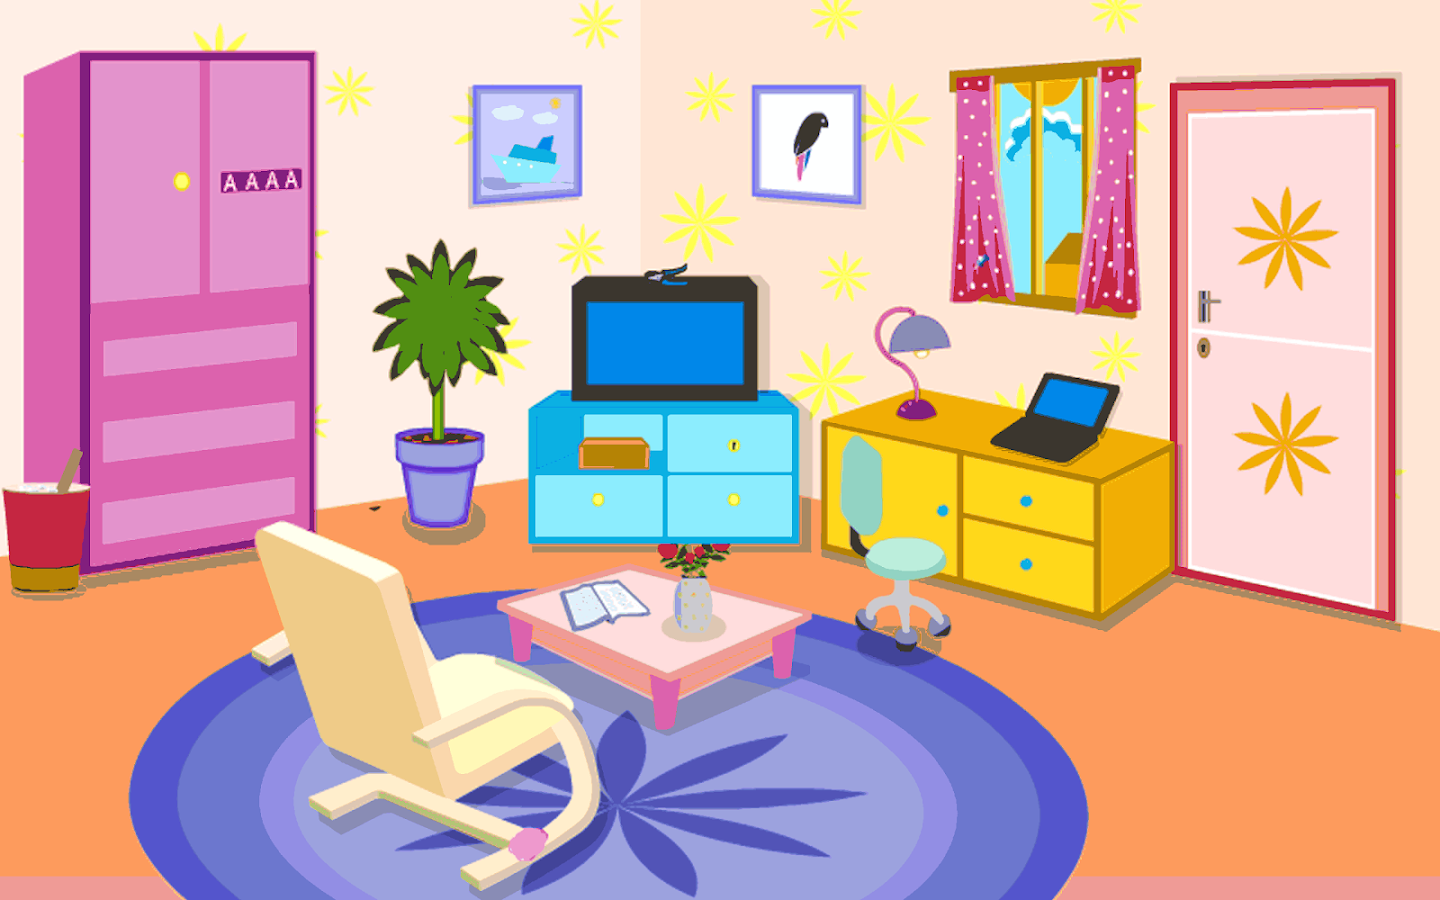 Escape puzzle apartment rooms android apps on google play for Escape puzzle